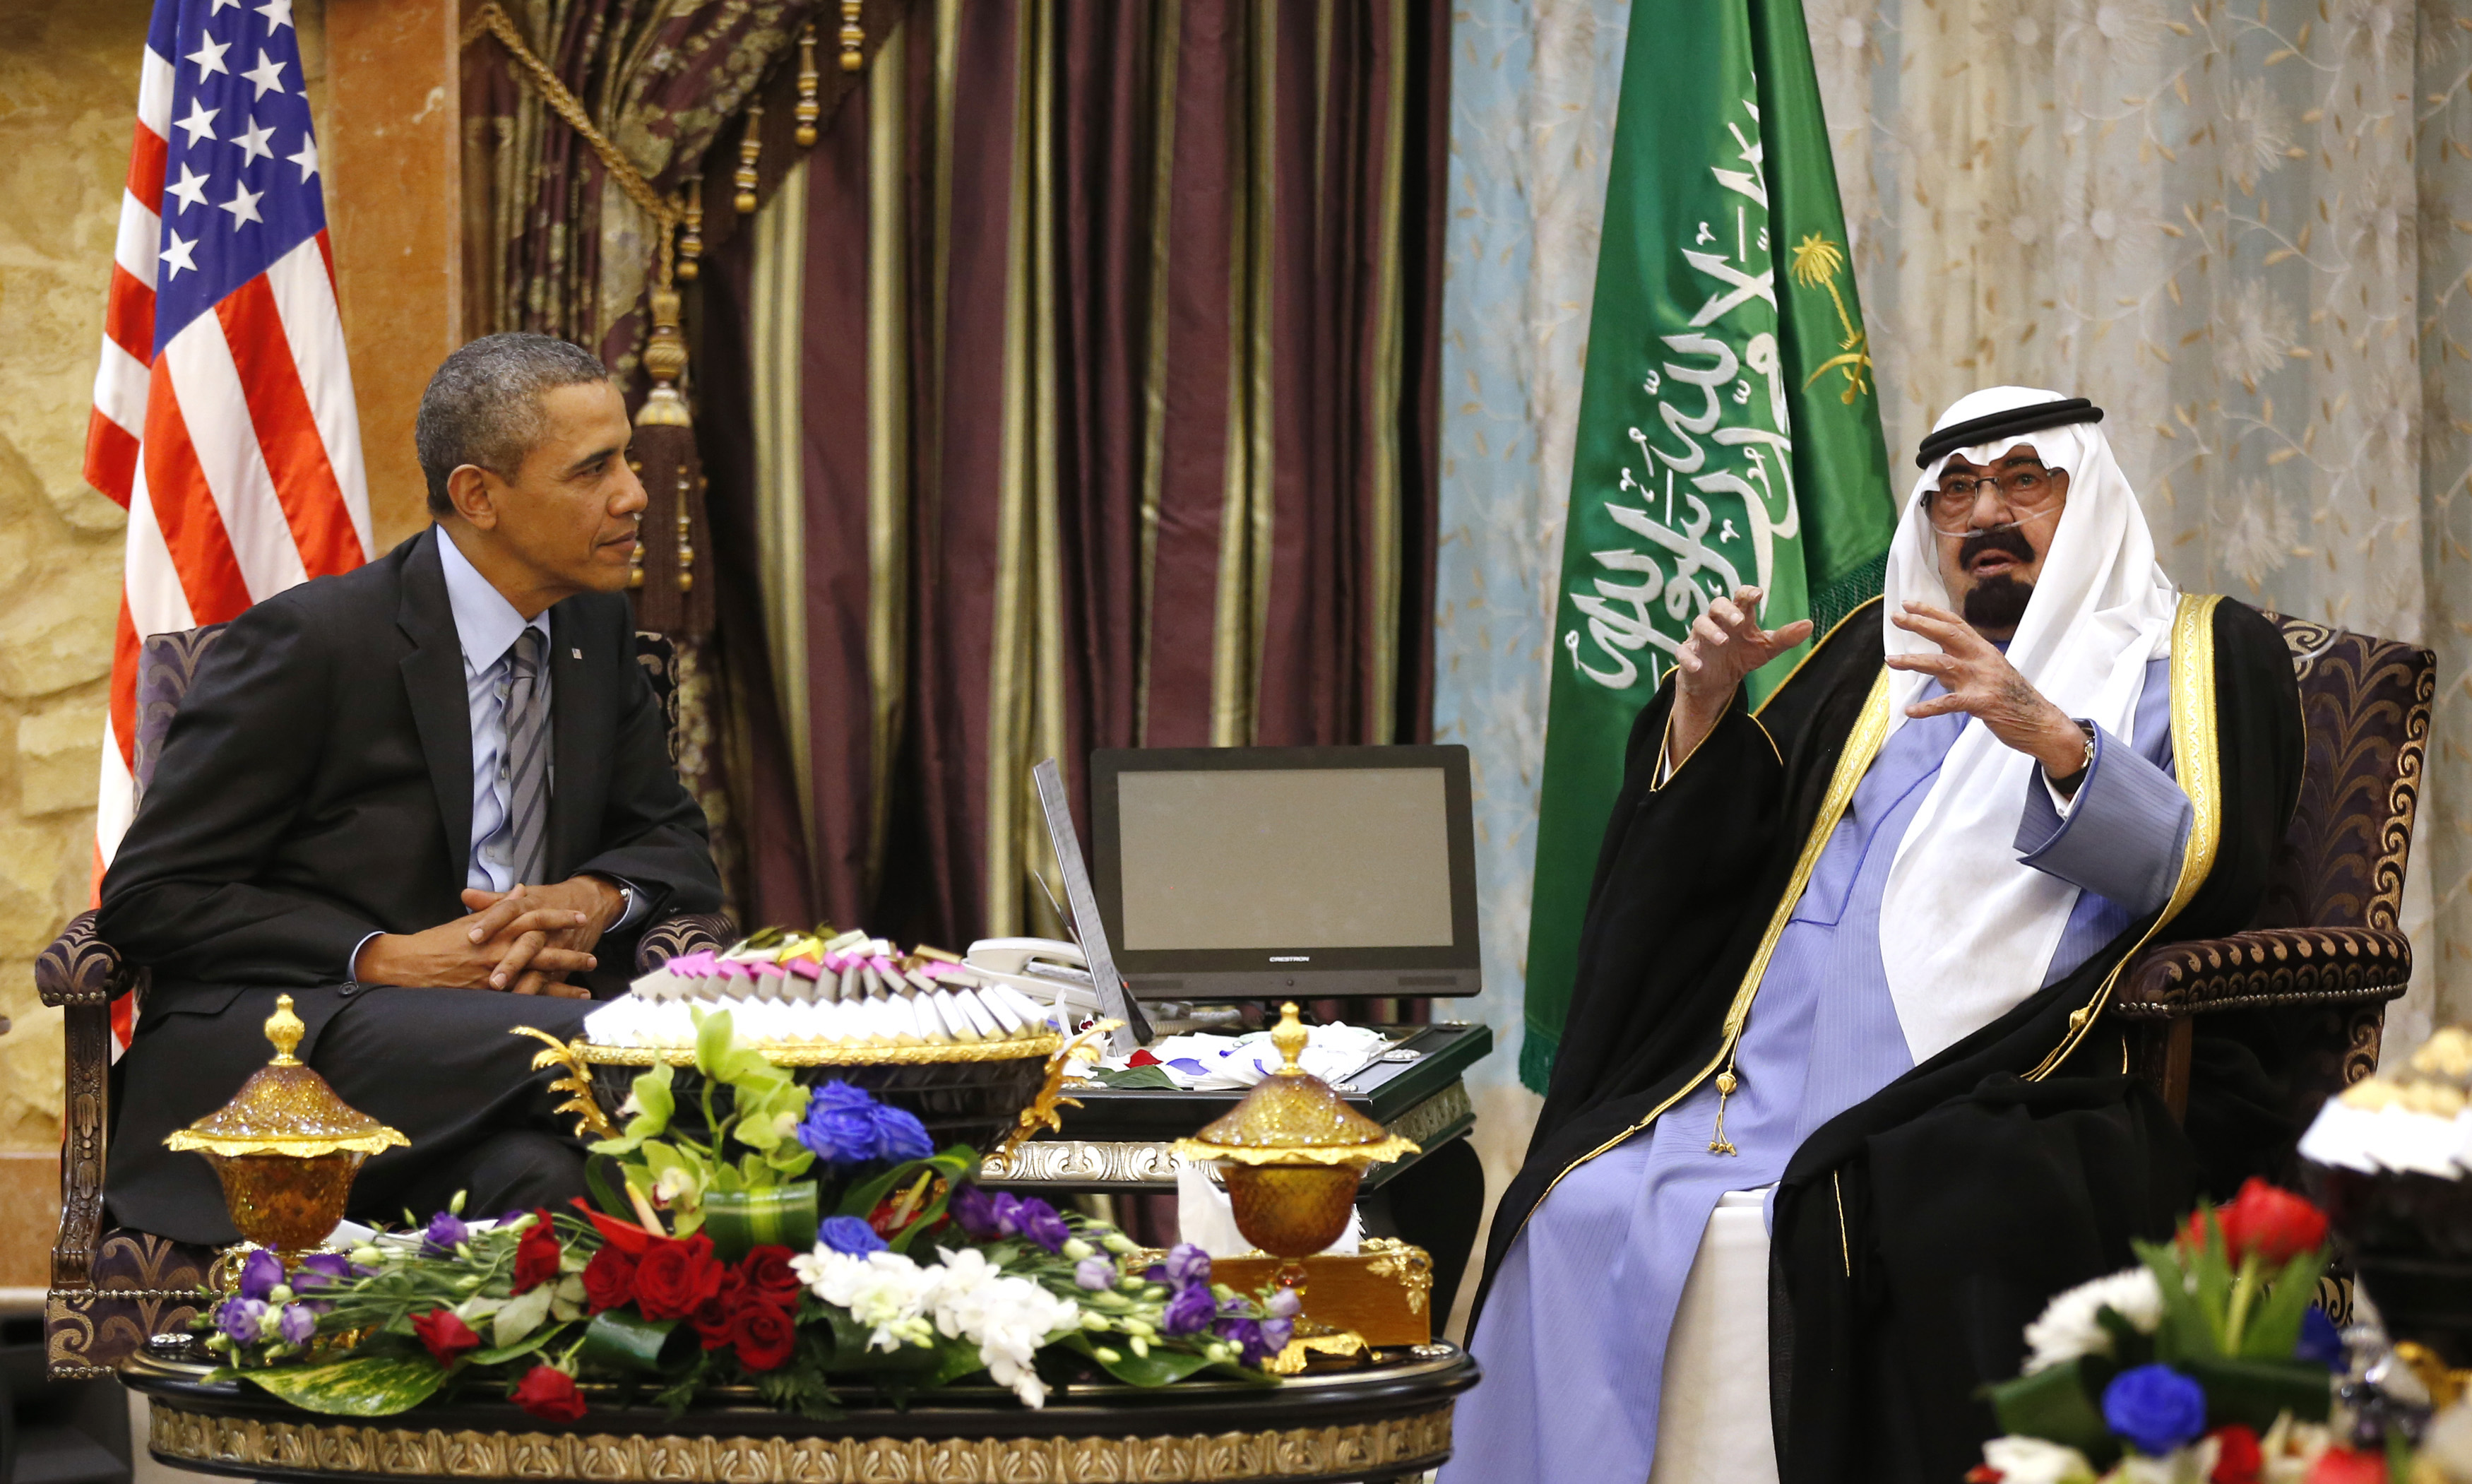 U.S. President Barack Obama meets with King Abdullah at Rawdat al-Khraim (Desert Camp) near Riyadh in Saudi Arabia, March 28, 2014.